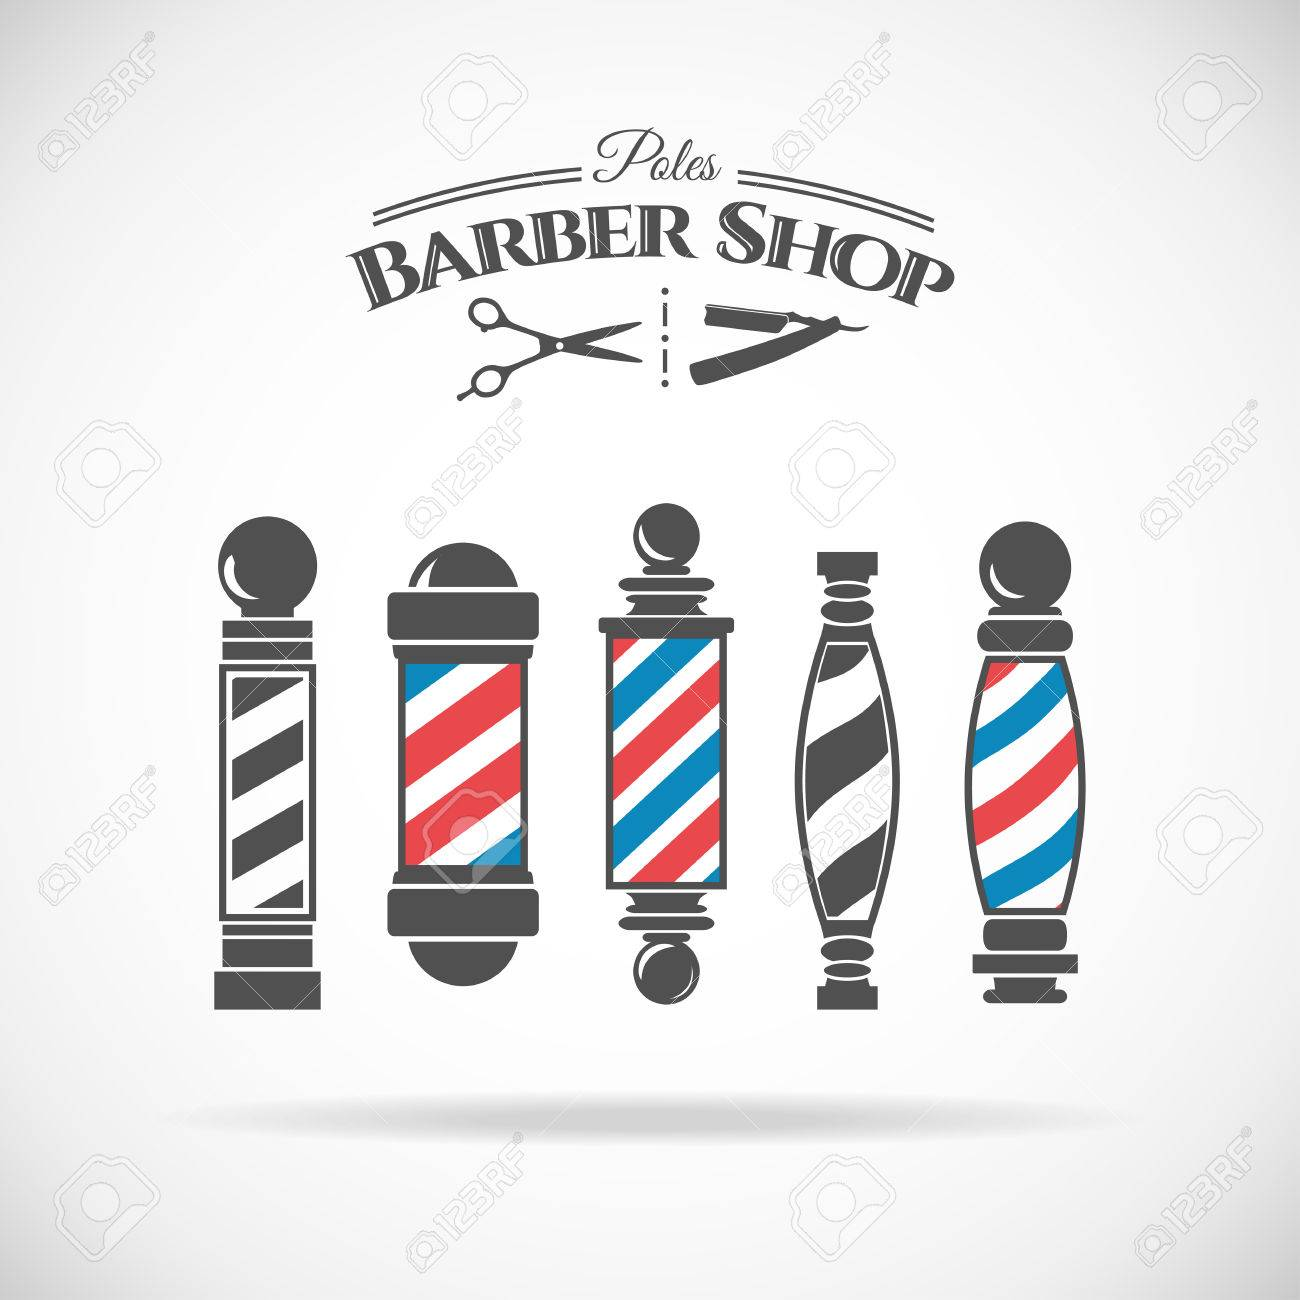 Vector illustration barber shop vintage pole collection isolated on white background. - 46957252